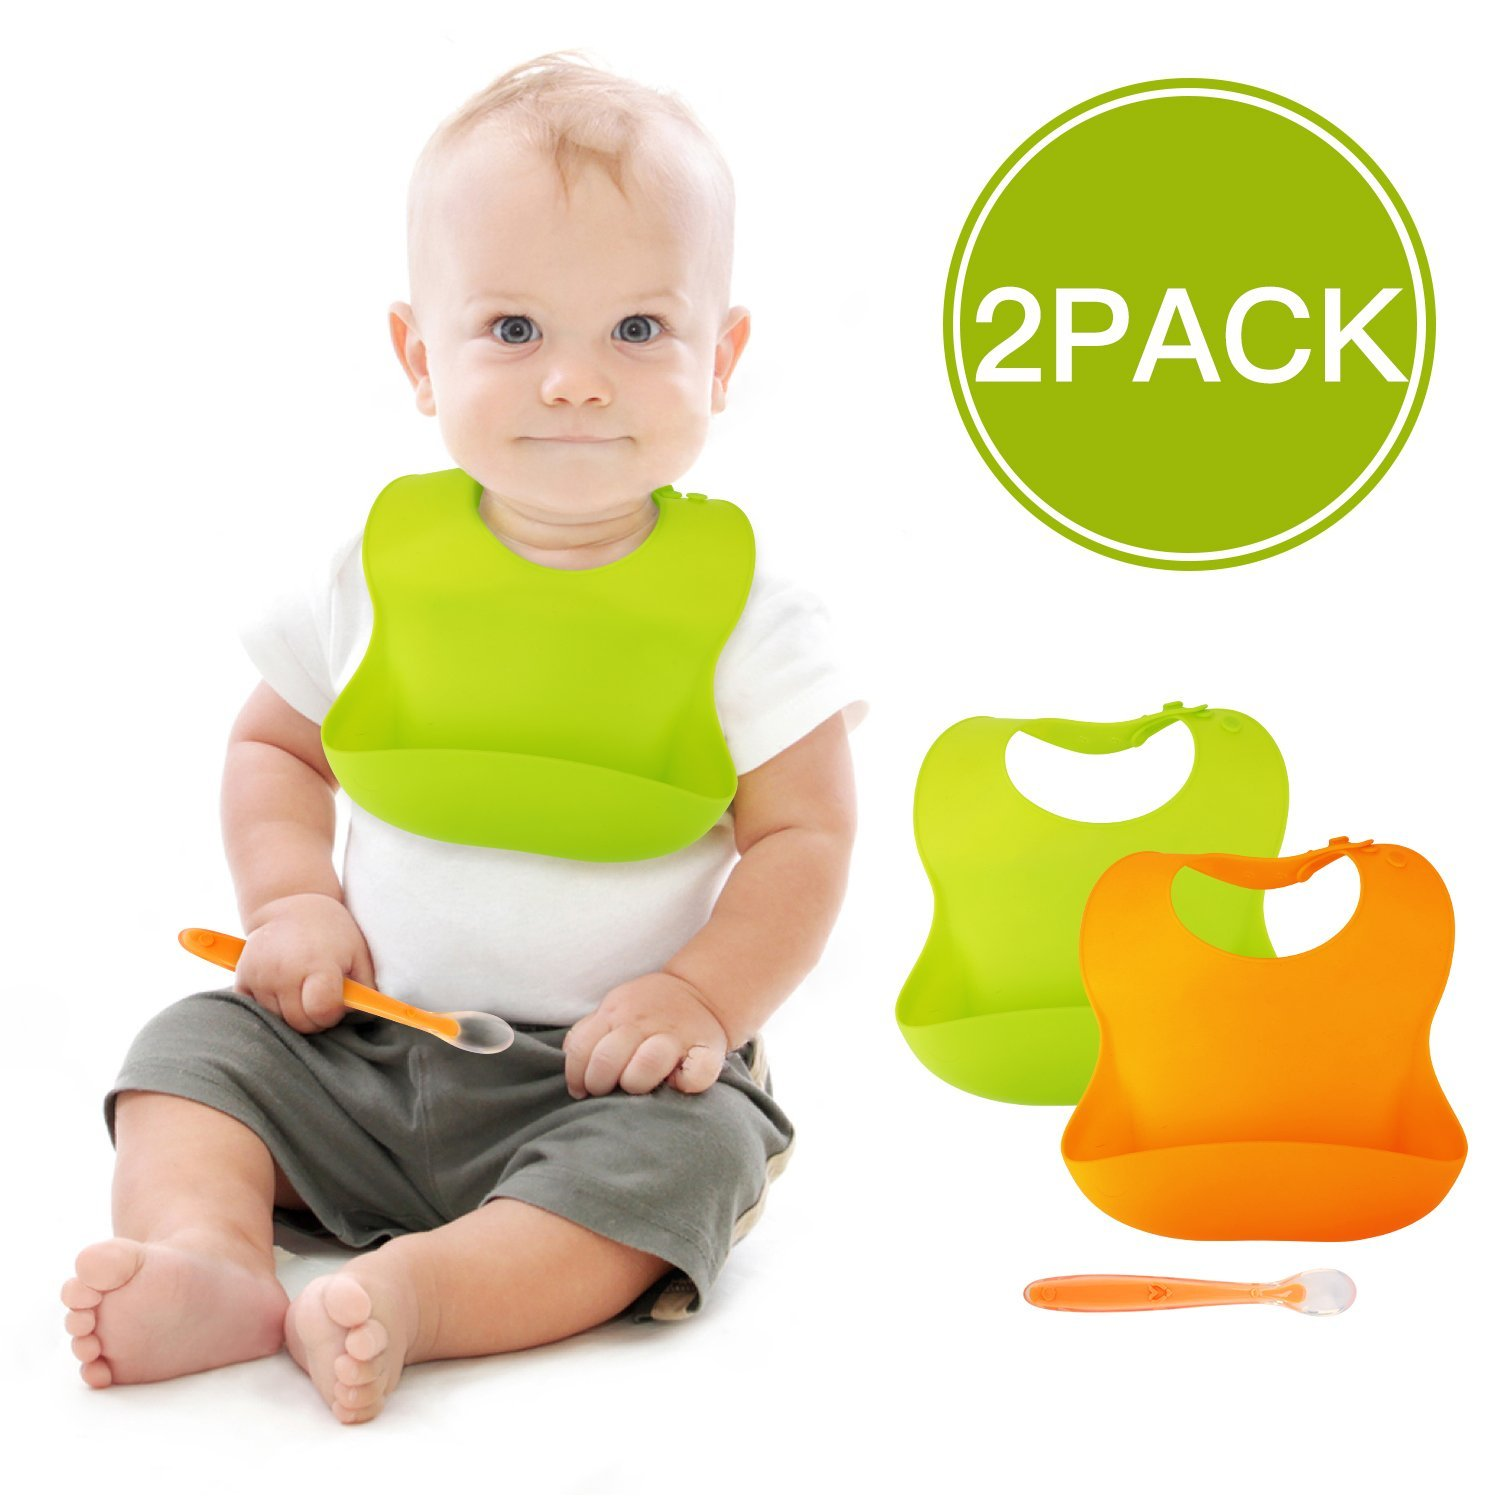 BALFER Baby Bibs 2 Packs Waterproof Silicone Bib Easily Clean Wide Pocket Soft Feeding Bibs for Infants & Toddlers with 1 Baby Spoon (Green & Orange, 6-72 Months)